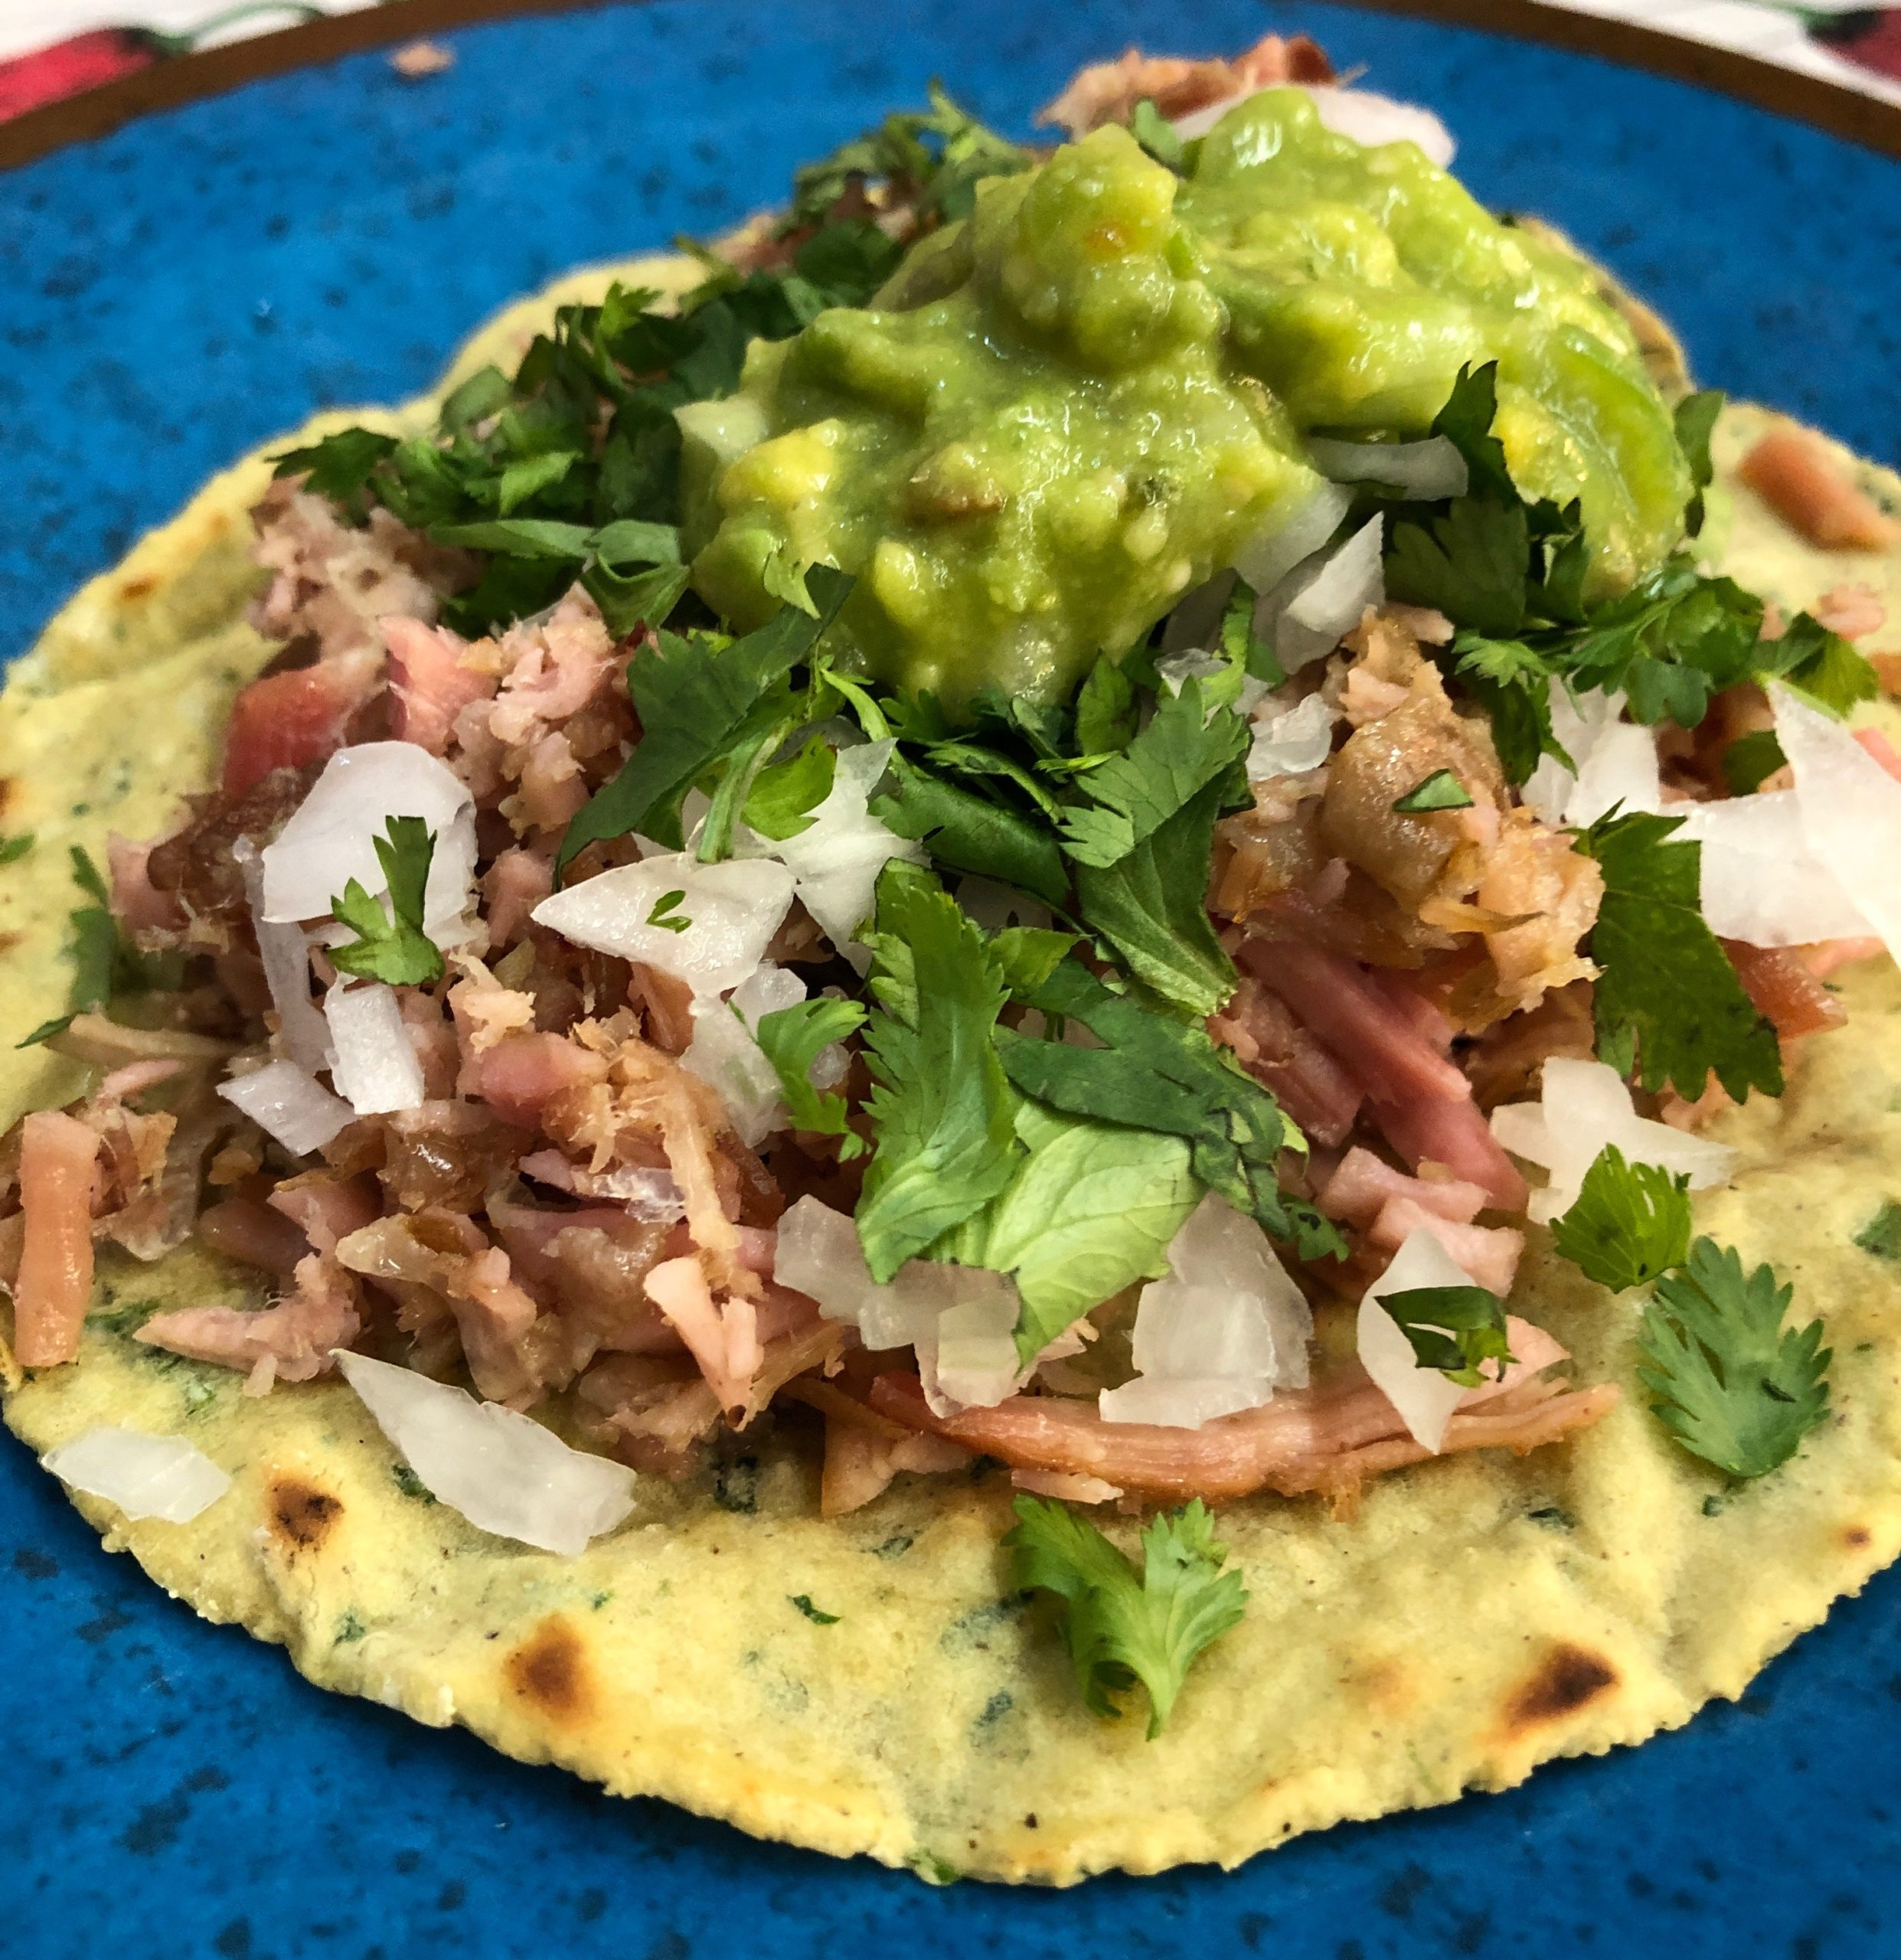 Carnitas taco with guacamole on a blue plate